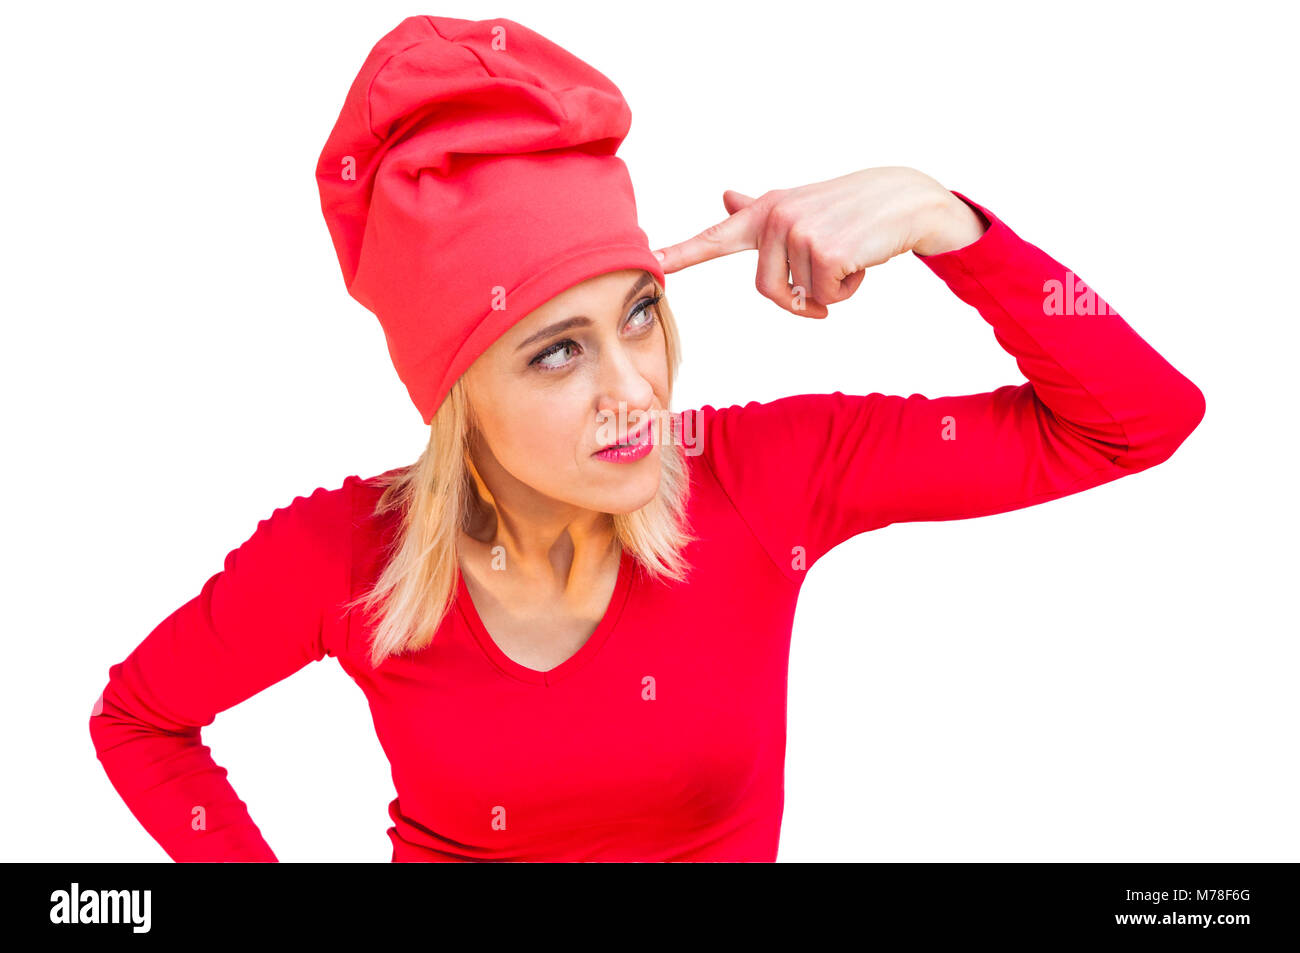 Dressed in red woman with finger gun hand sign against her temple isolated on white background Stock Photo